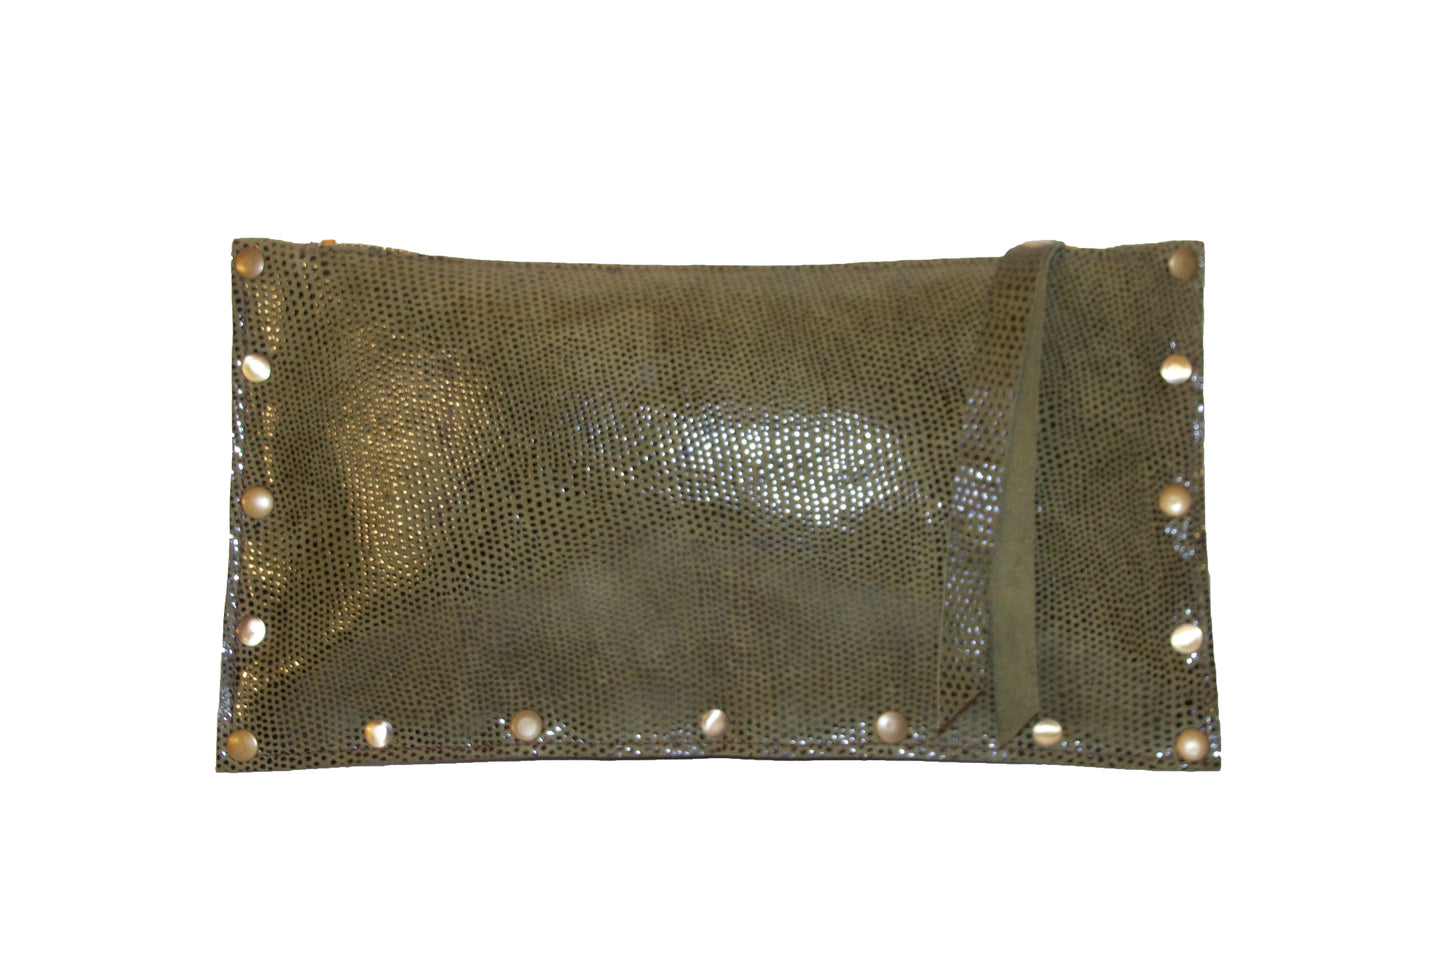 Abbey Pillow Clutch- Studded Green Glossy Dot Leather